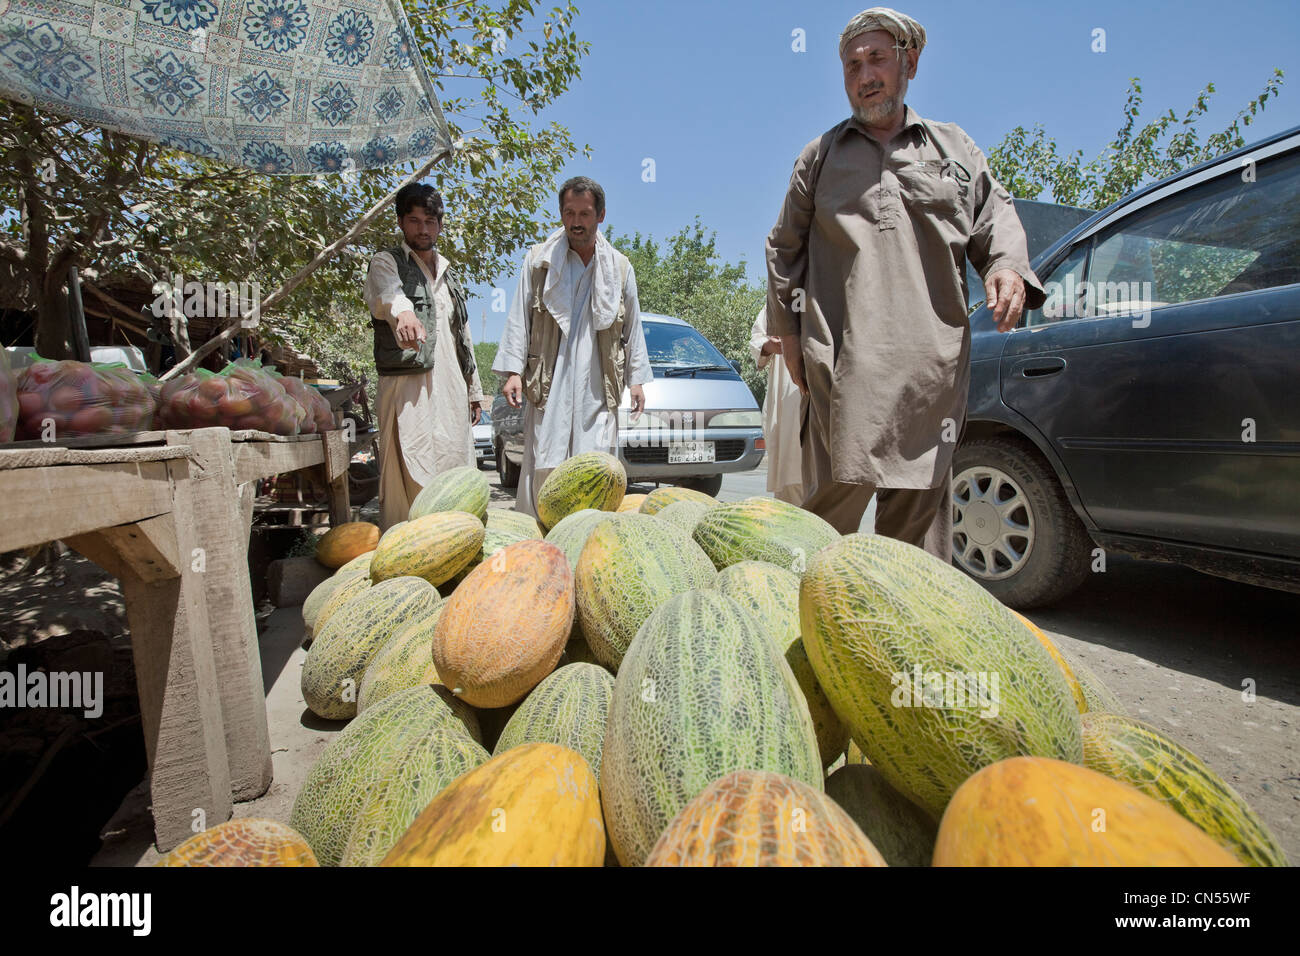 Afghanistan, Kunduz province, Aliabad, melon seller by the side of the road - Stock Image